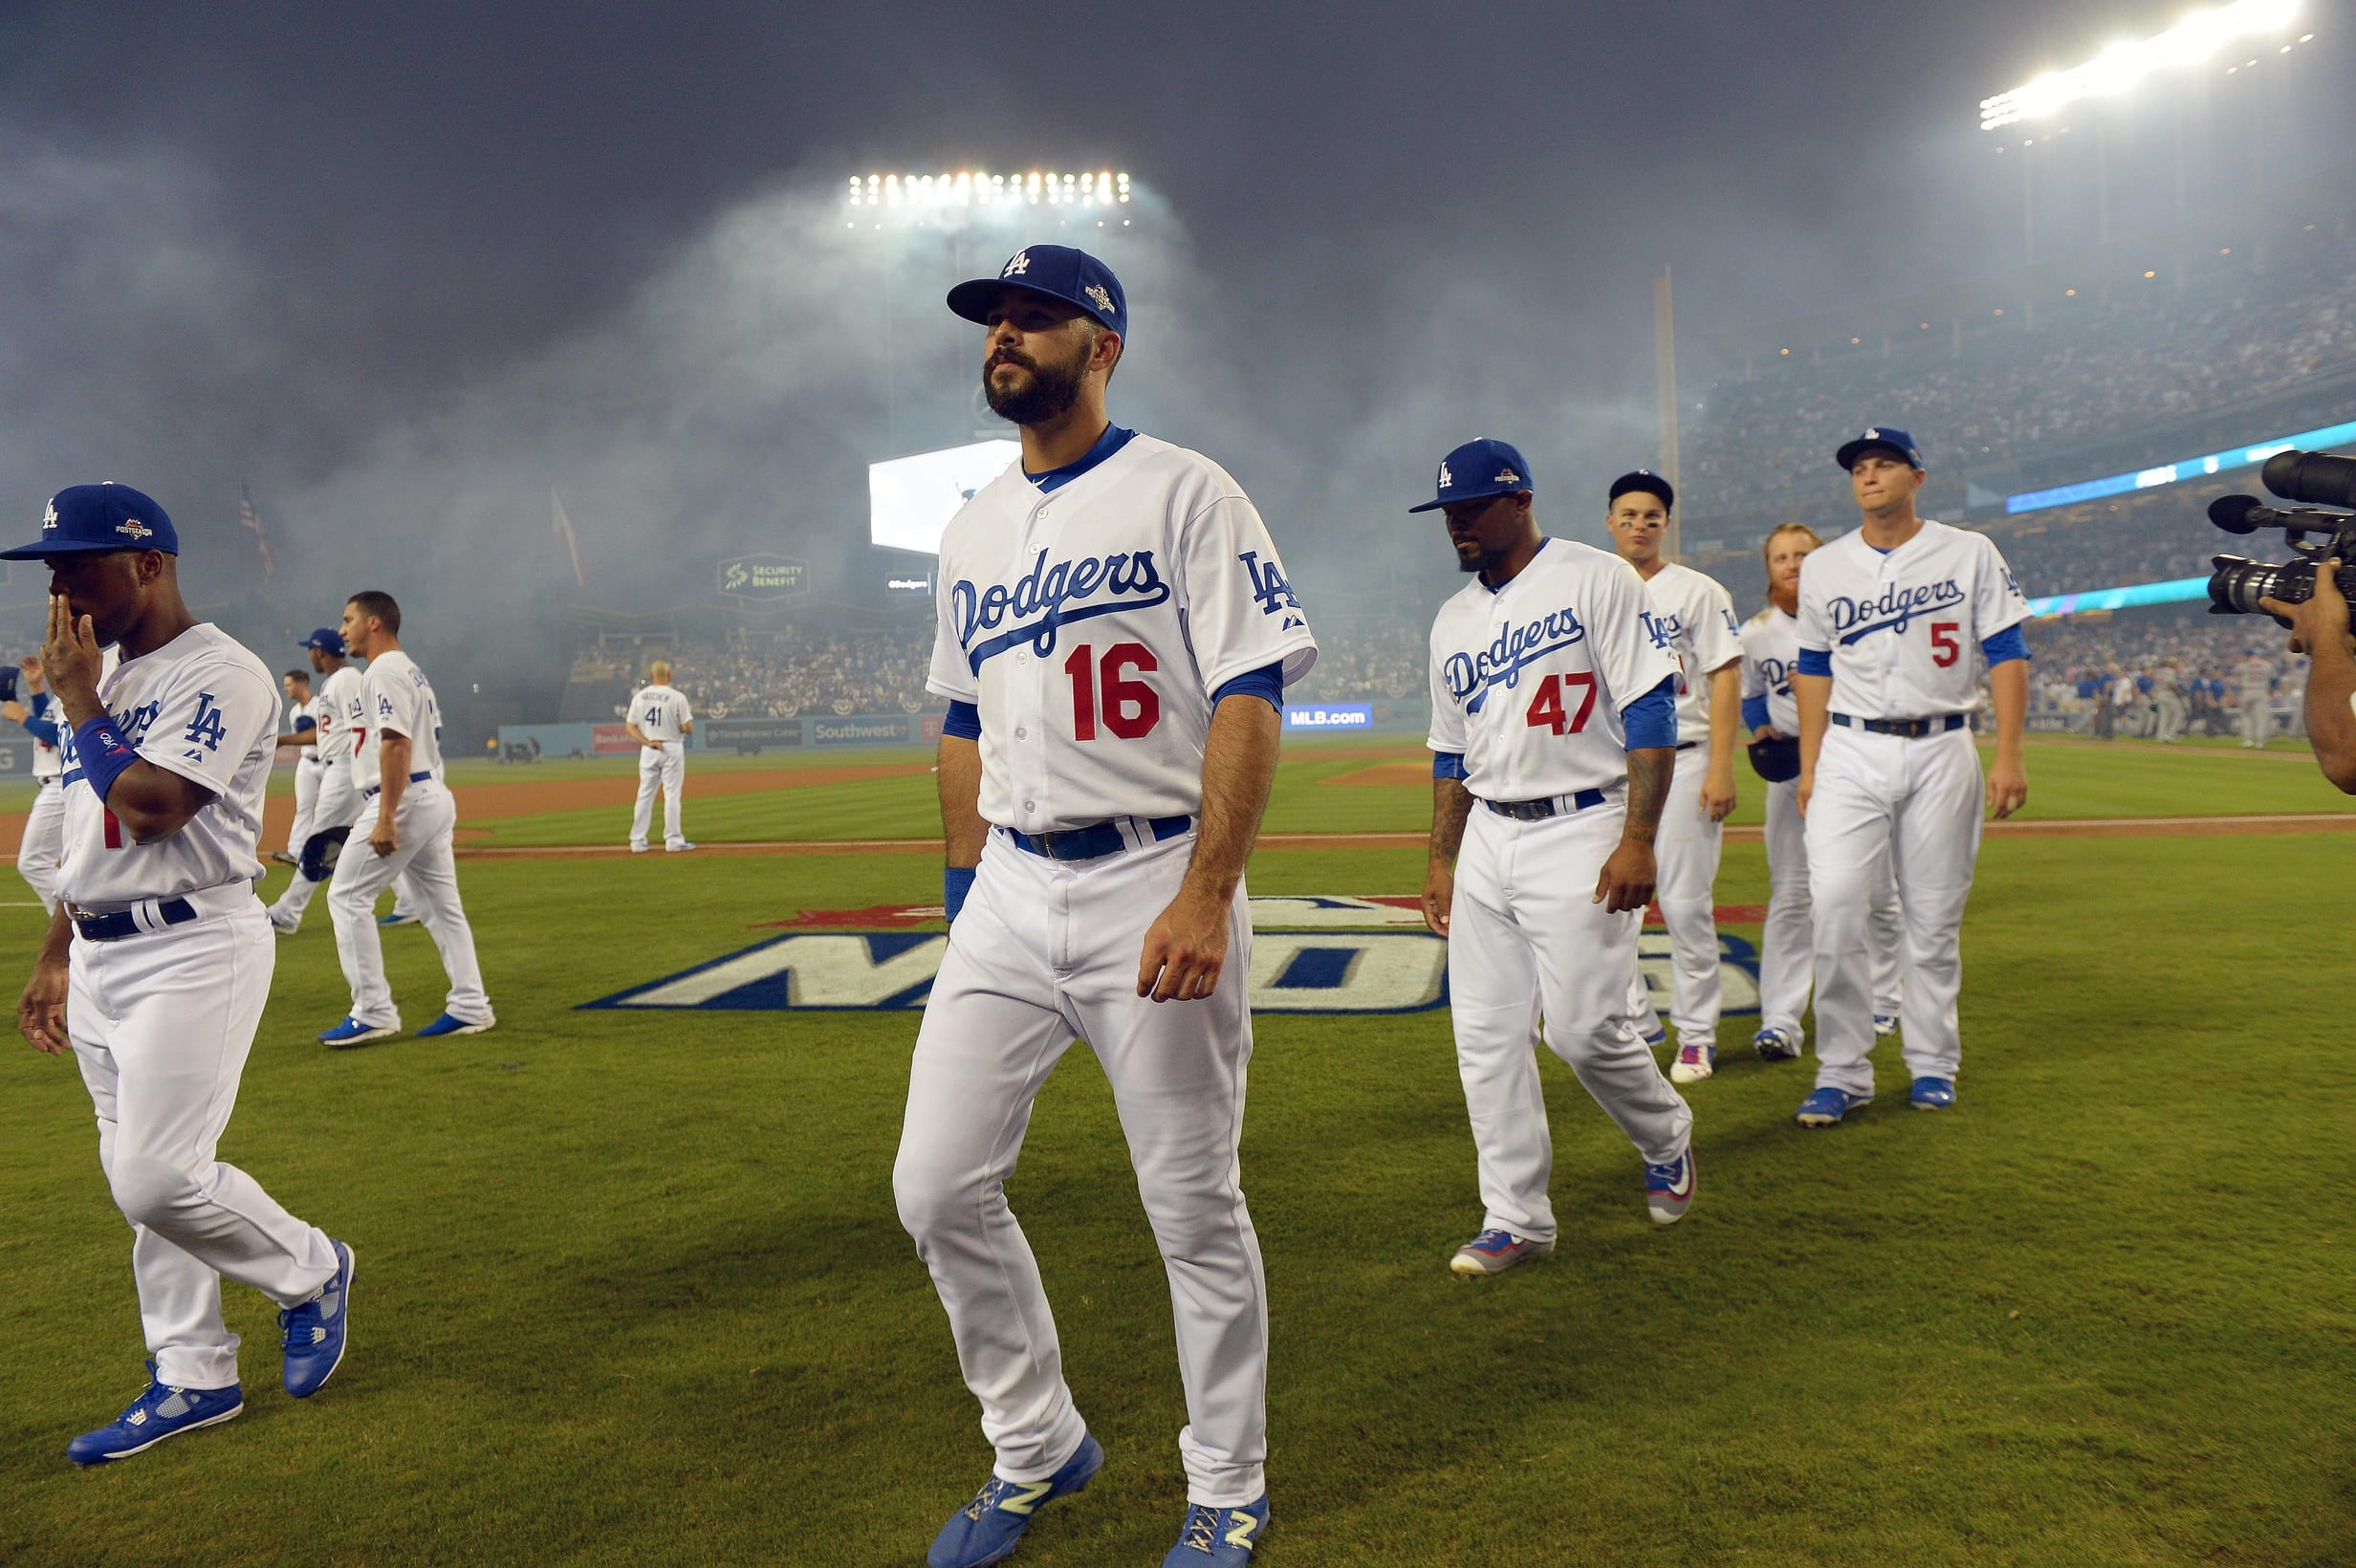 Andre-ethier-howie-kendrick-dodgers-nlds